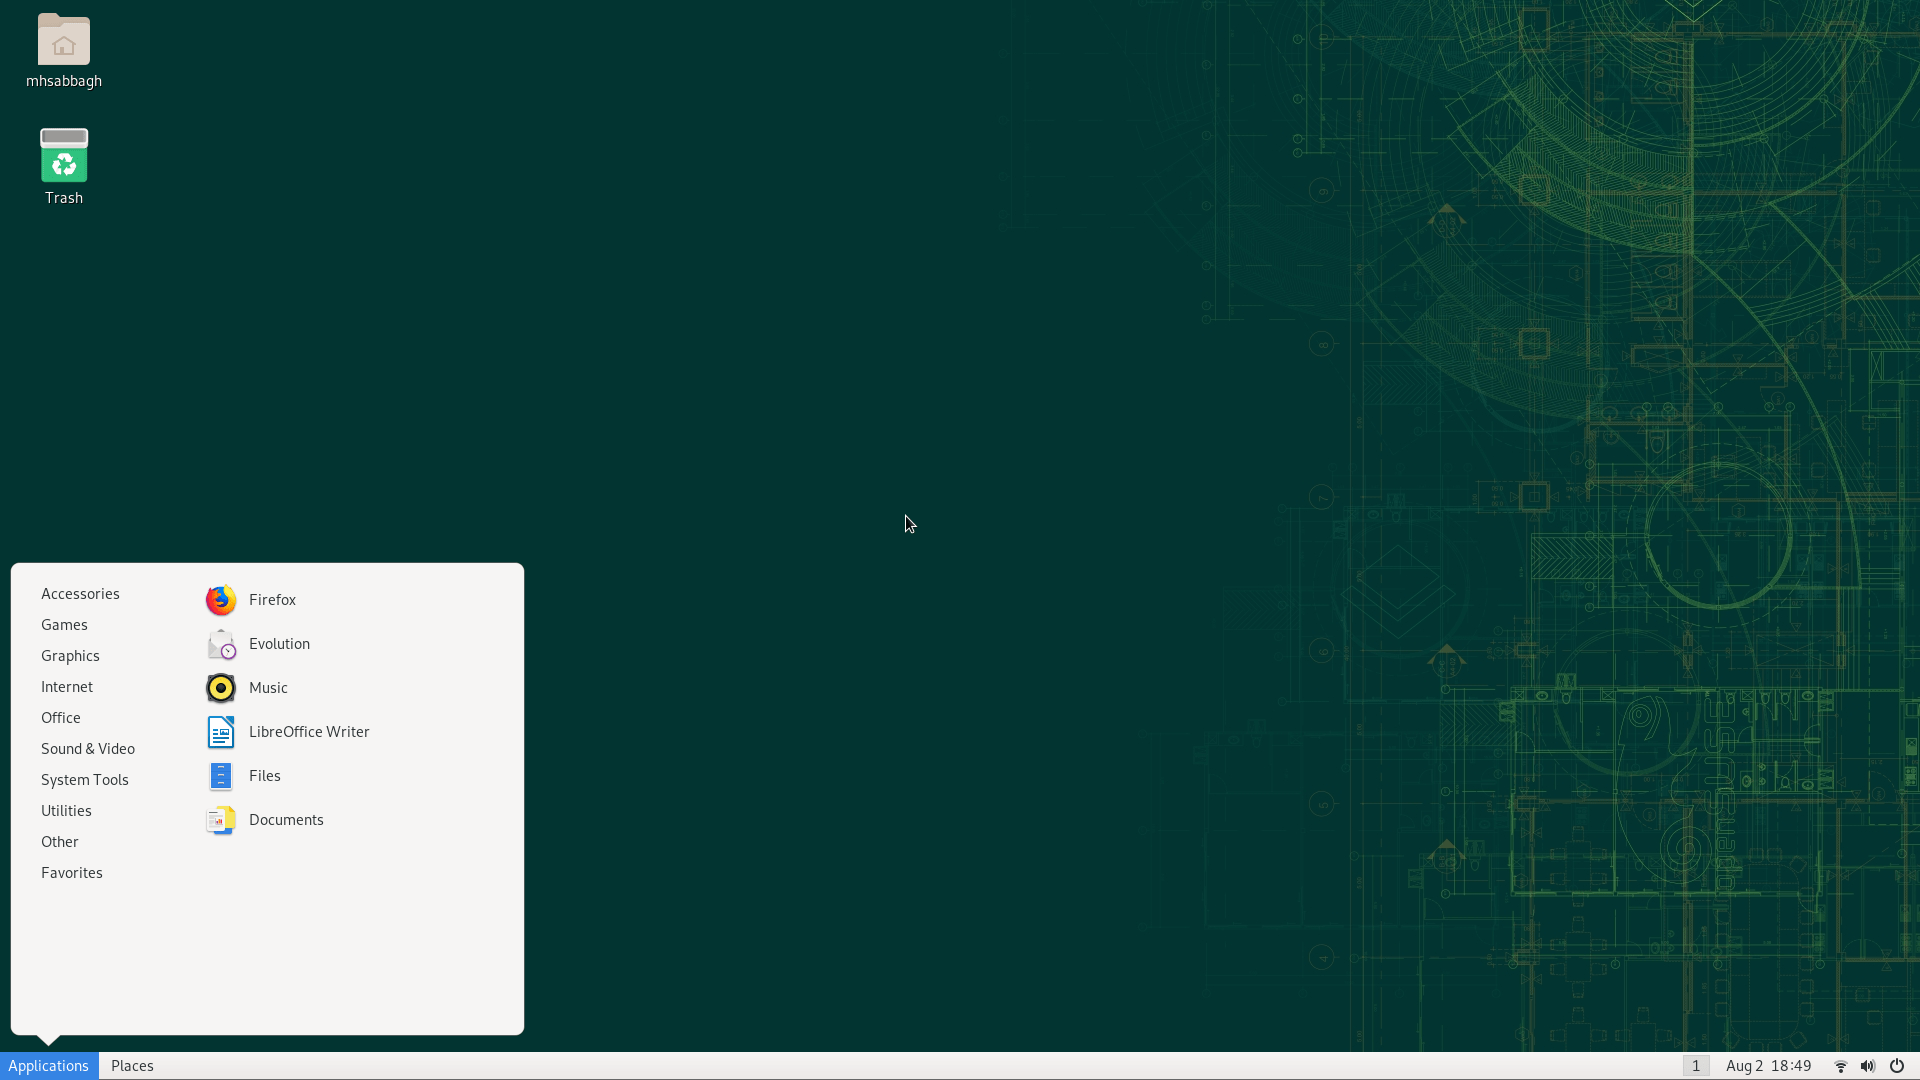 opensuse 15.2 3 August 2, 2020